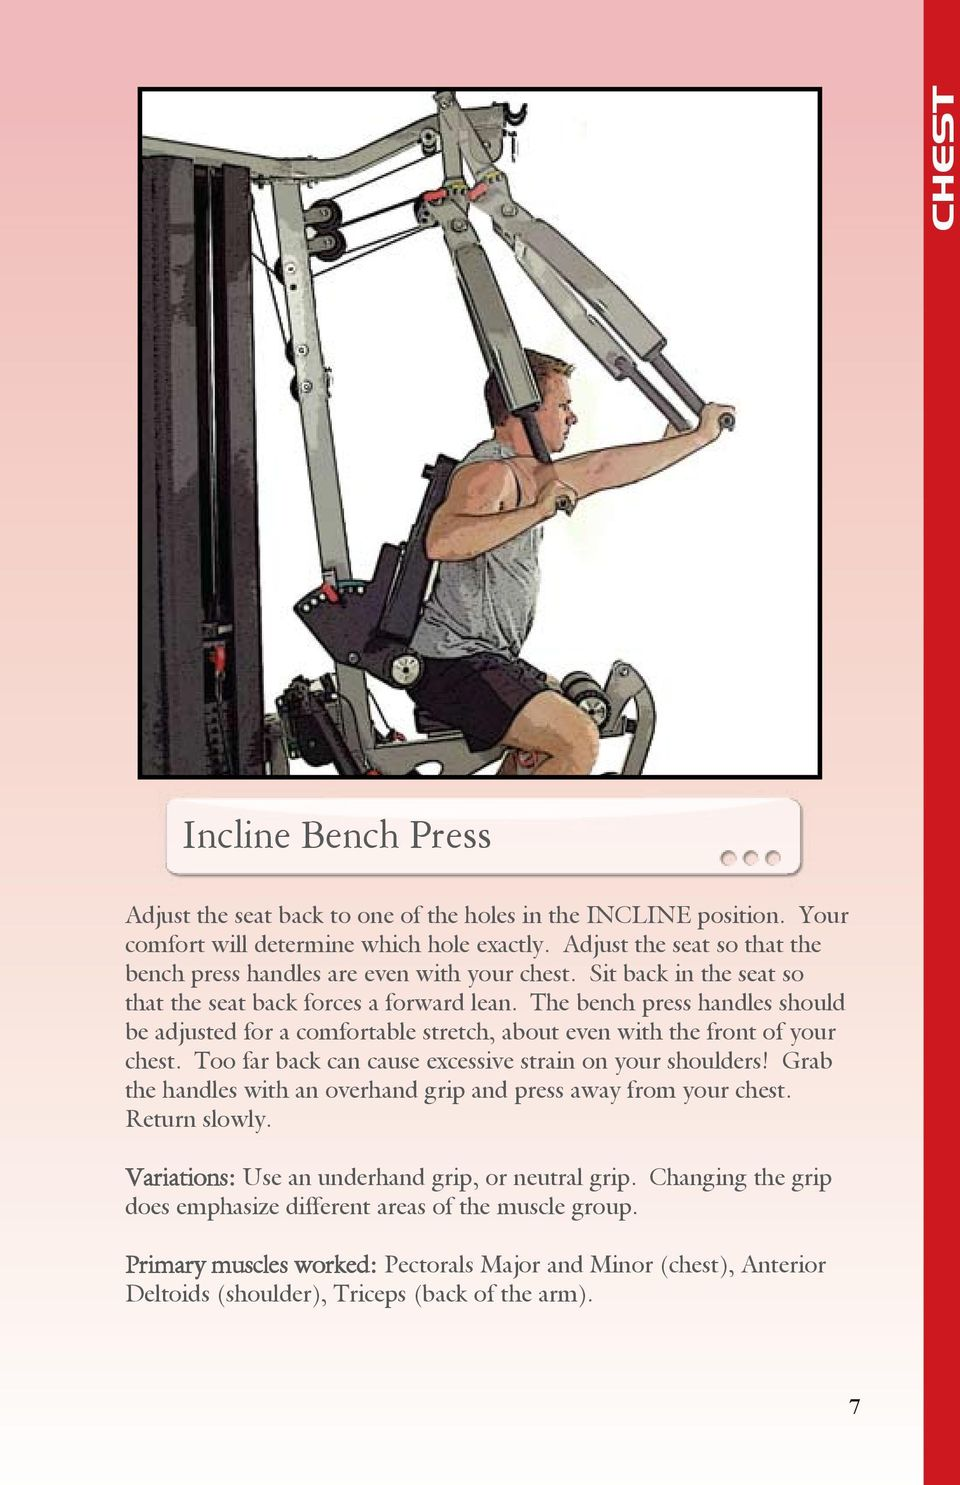 The bench press handles should be adjusted for a comfortable stretch, about even with the front of your chest. Too far back can cause excessive strain on your shoulders!